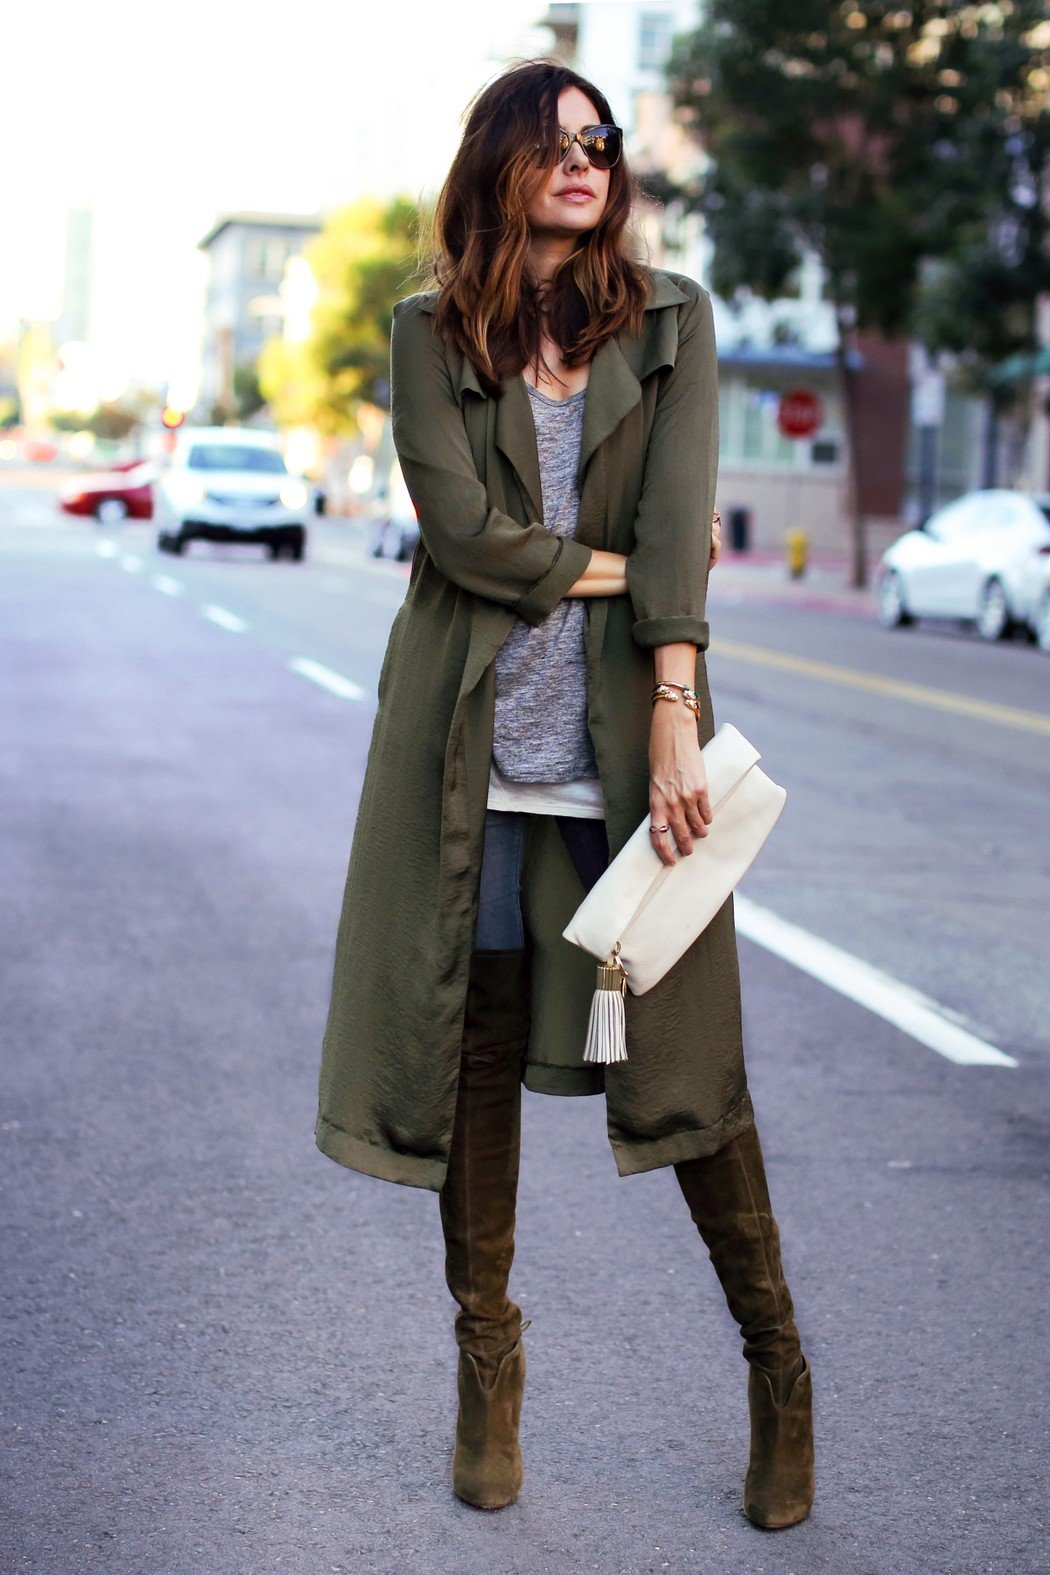 A long flowing trench coat can be perfectly accesorised with a casual tee and over the knee boots. Via Erica Hoida. Trench: Girls on Film, Shirts: Rag & Bone and David Lerner, Jeans: Asos, Boots: Aquazzura, Clutch: India Hicks, Bracelets: Vita Fede.